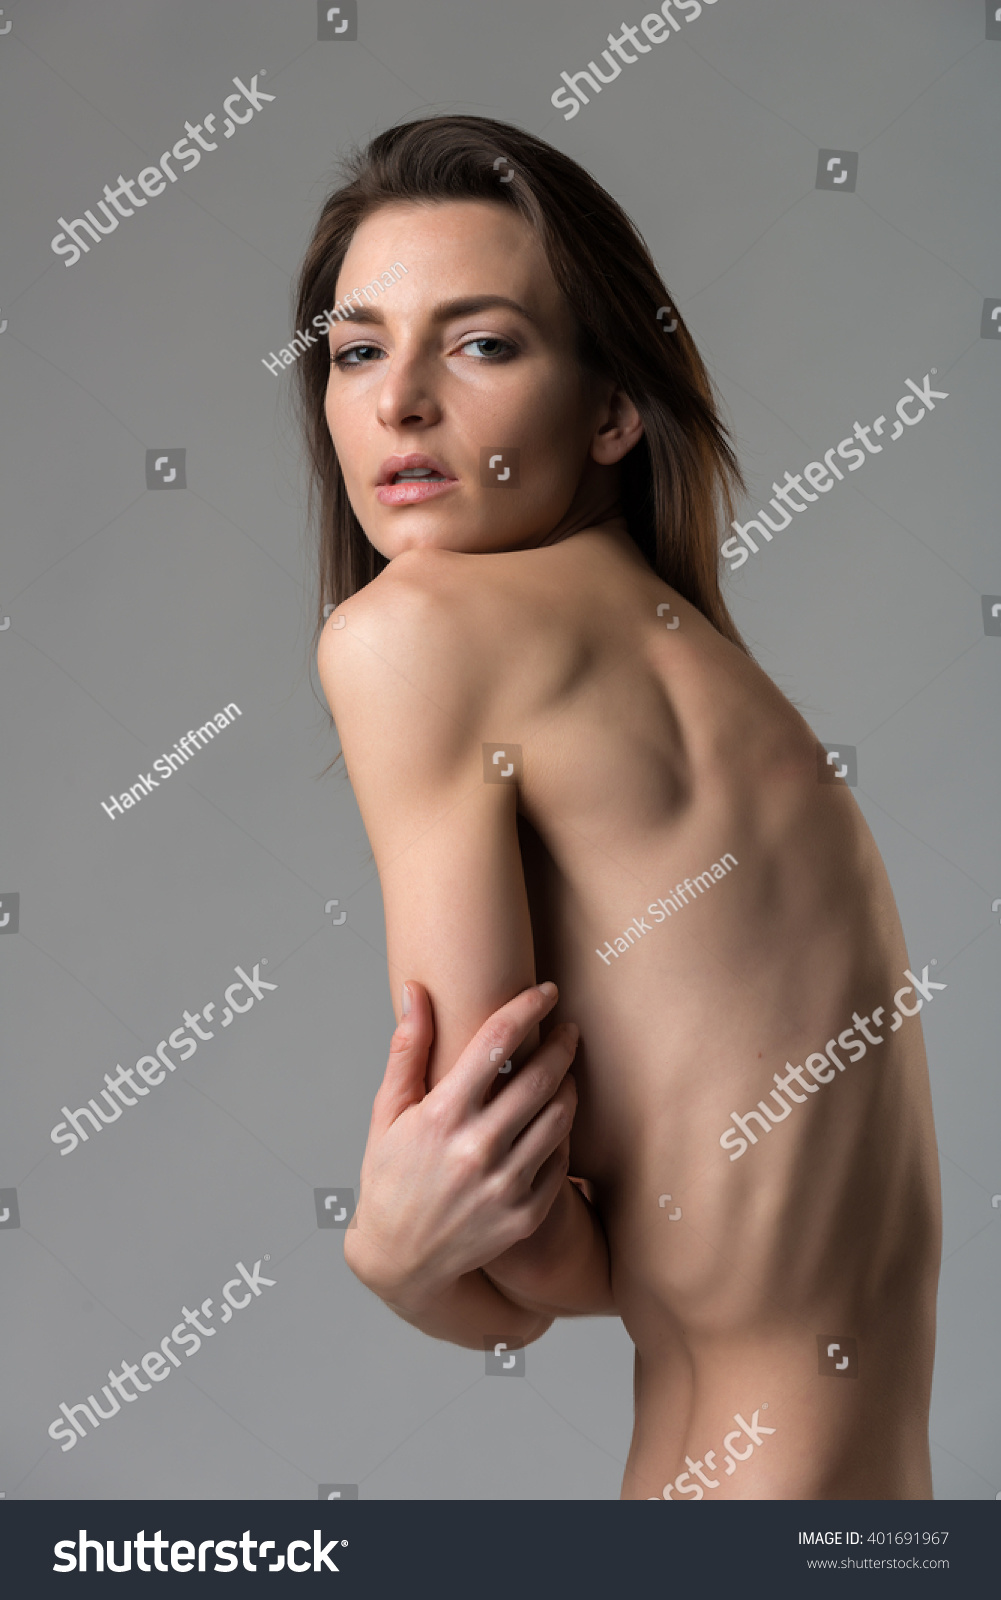 beautiful slender italian woman nude onの写真素材(ロイヤリティ